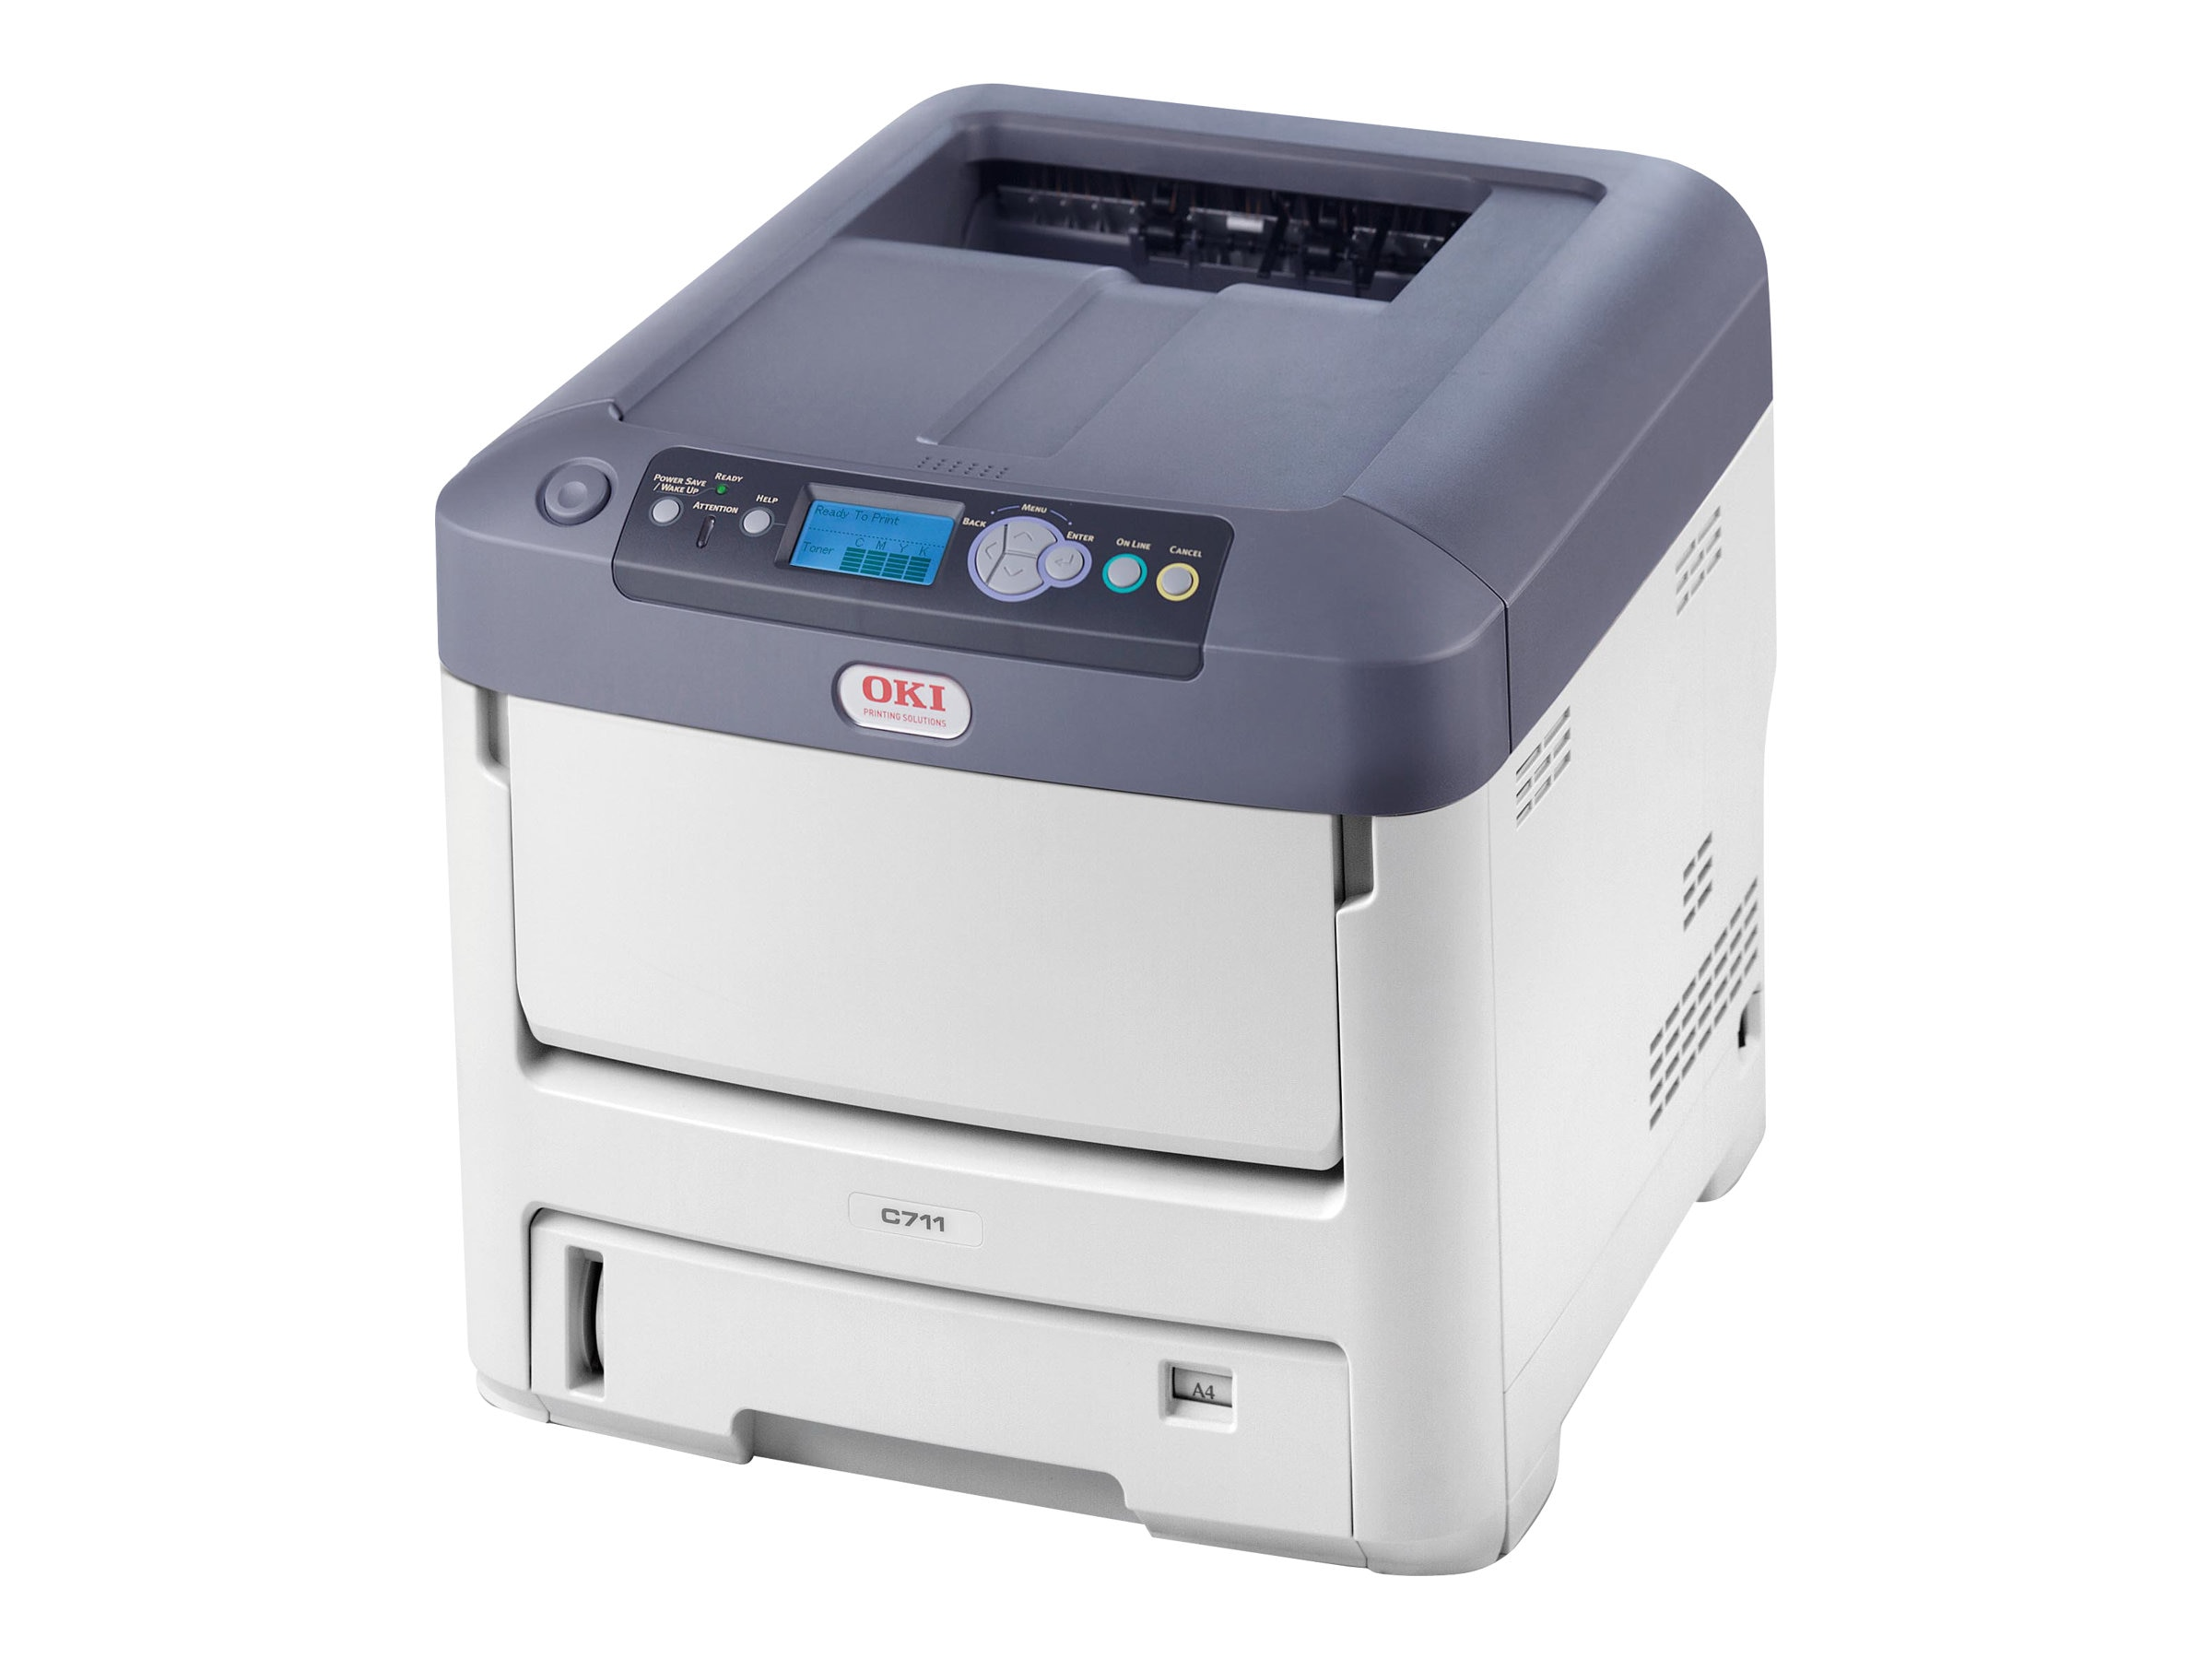 Oki C711n Digital Color Printer - 230V, 62433502, 11238209, Printers - Laser & LED (color)